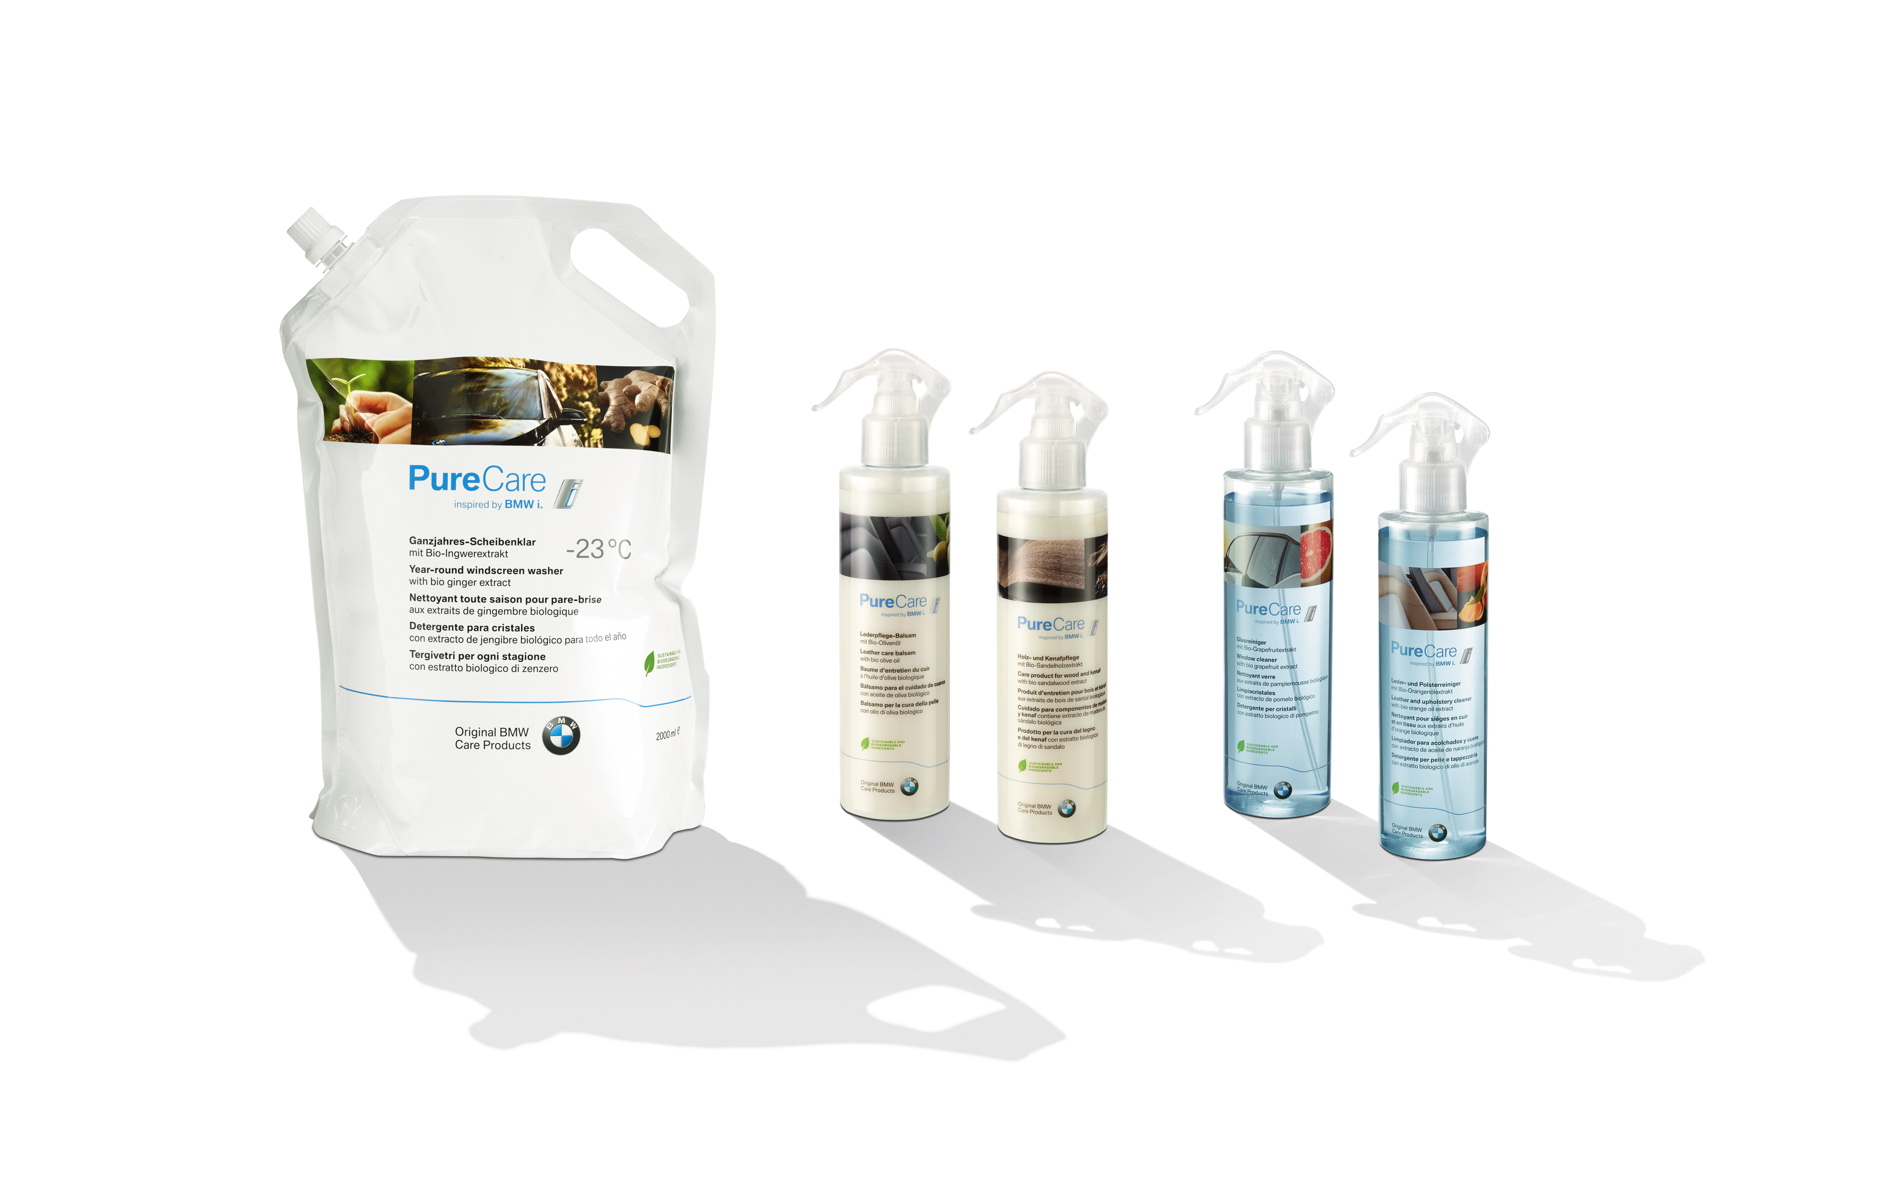 PureCare inspired by BMW i for eco friendly vehicle care 13